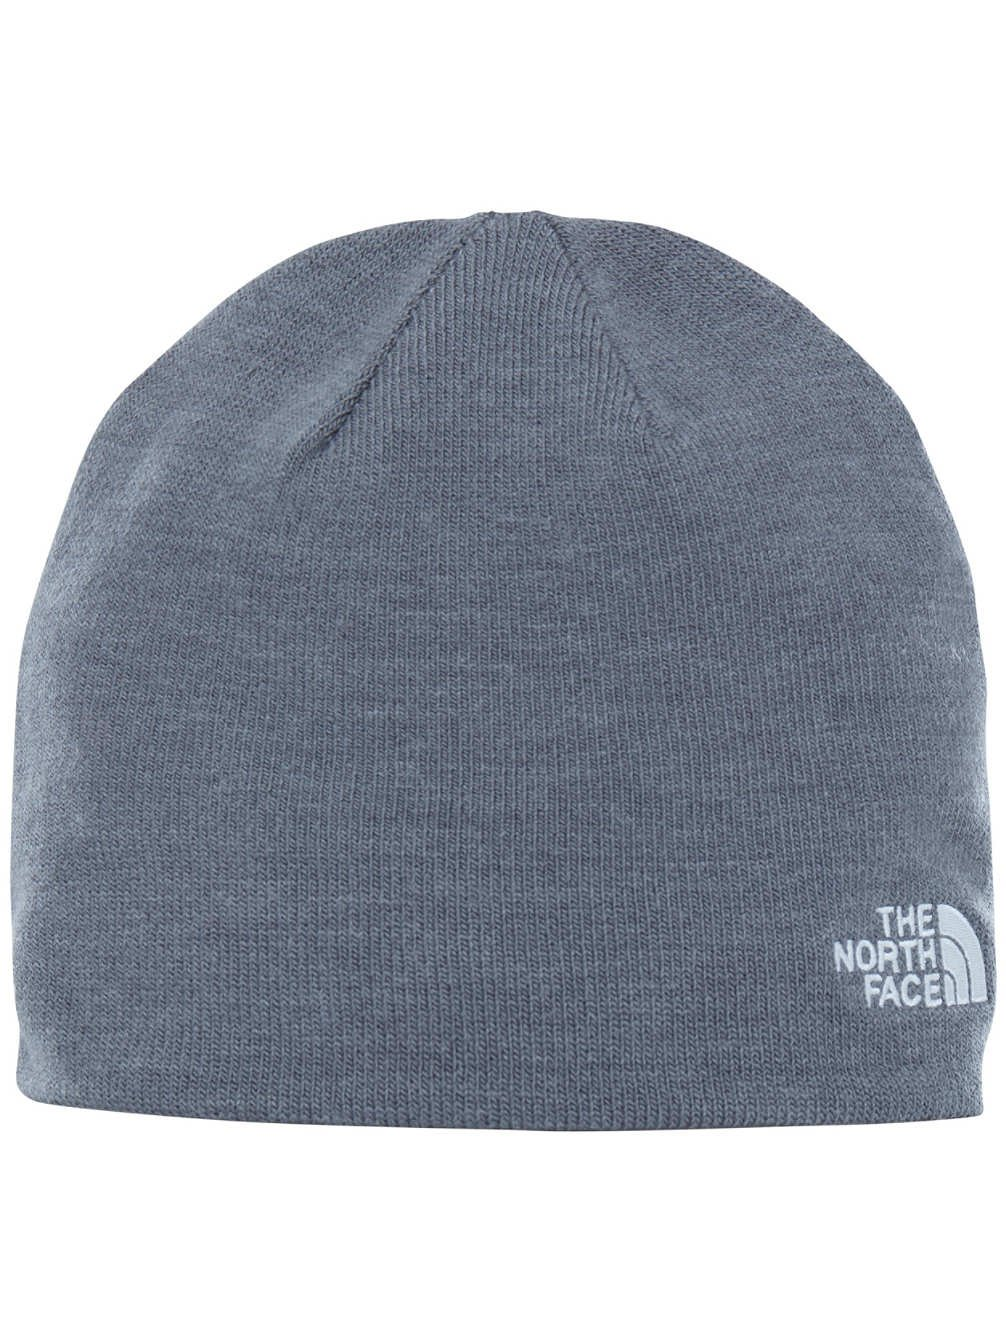 The North Face Unisex Adult's Gateway Beanie One Size T0A5YQP5R. OS